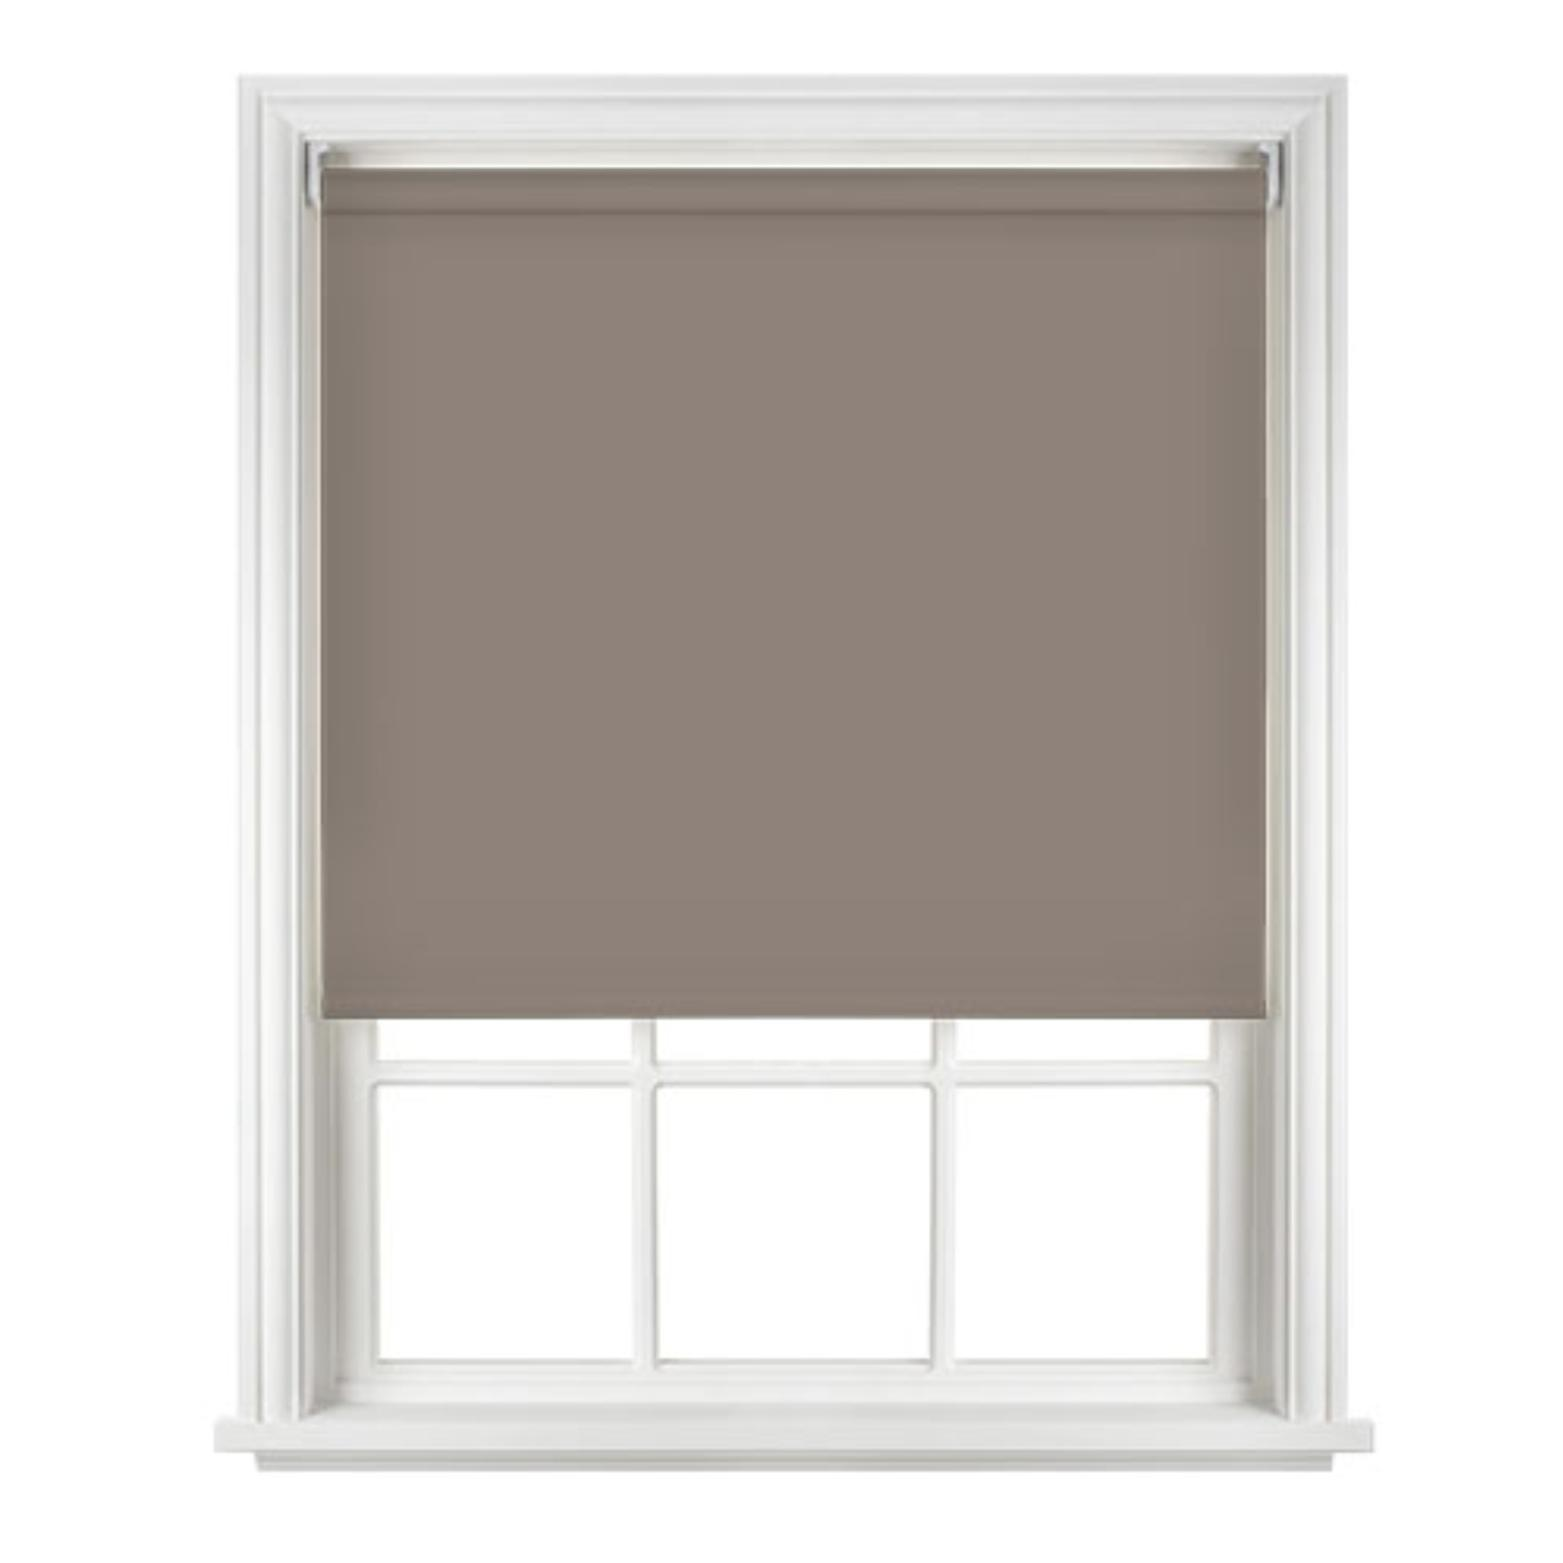 product at q large blinds blind grey l diy cm b w goshopping venetian